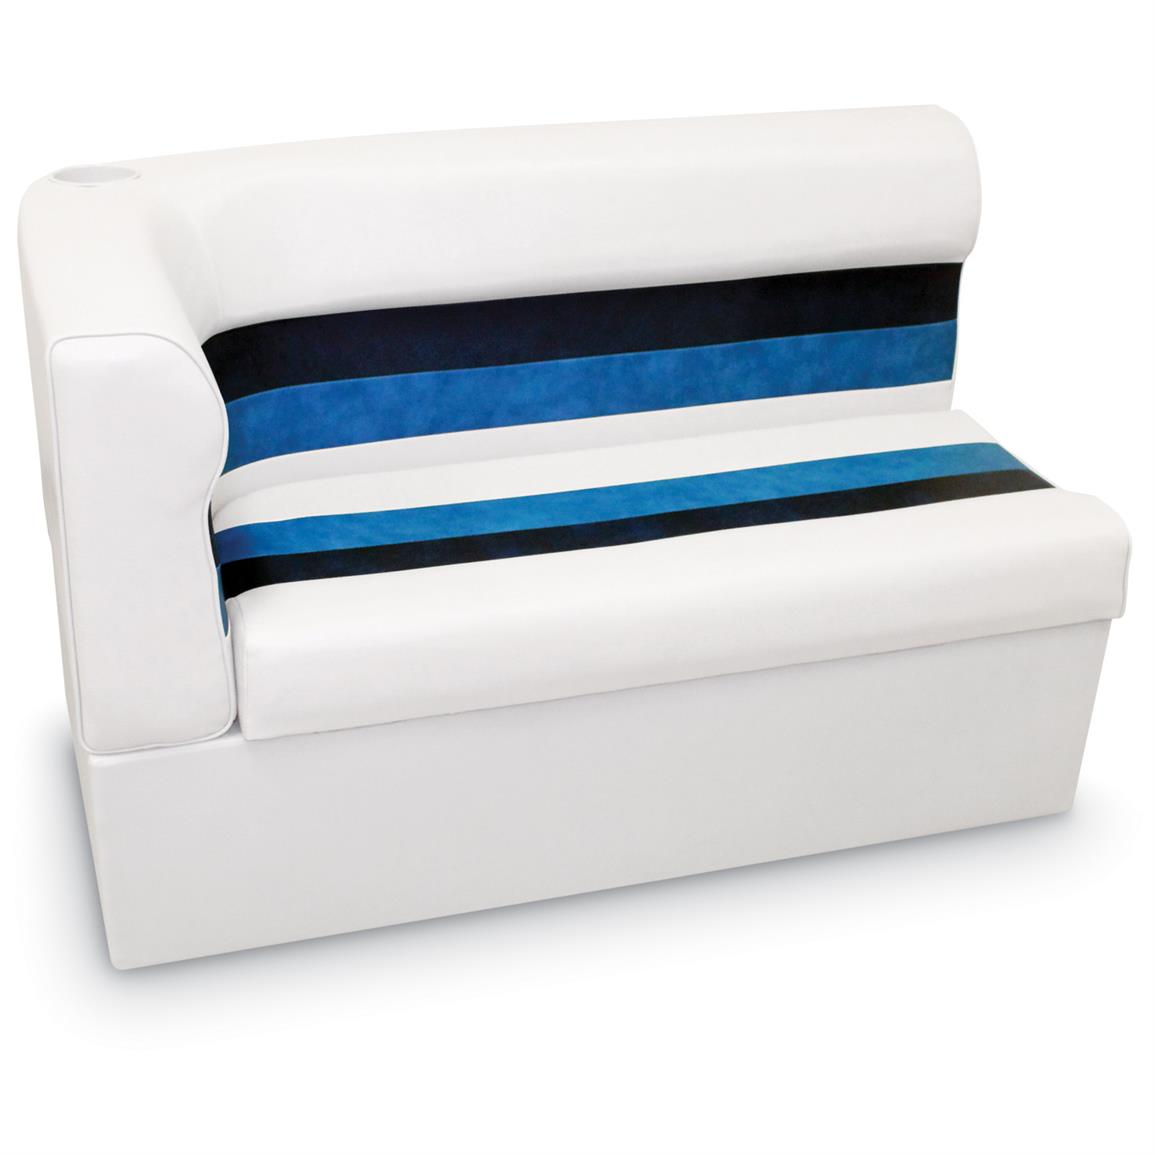 "Wise Long Corner Couch Pontoon Seat, 45"" Radius Right, White / Navy Blue, Color F"